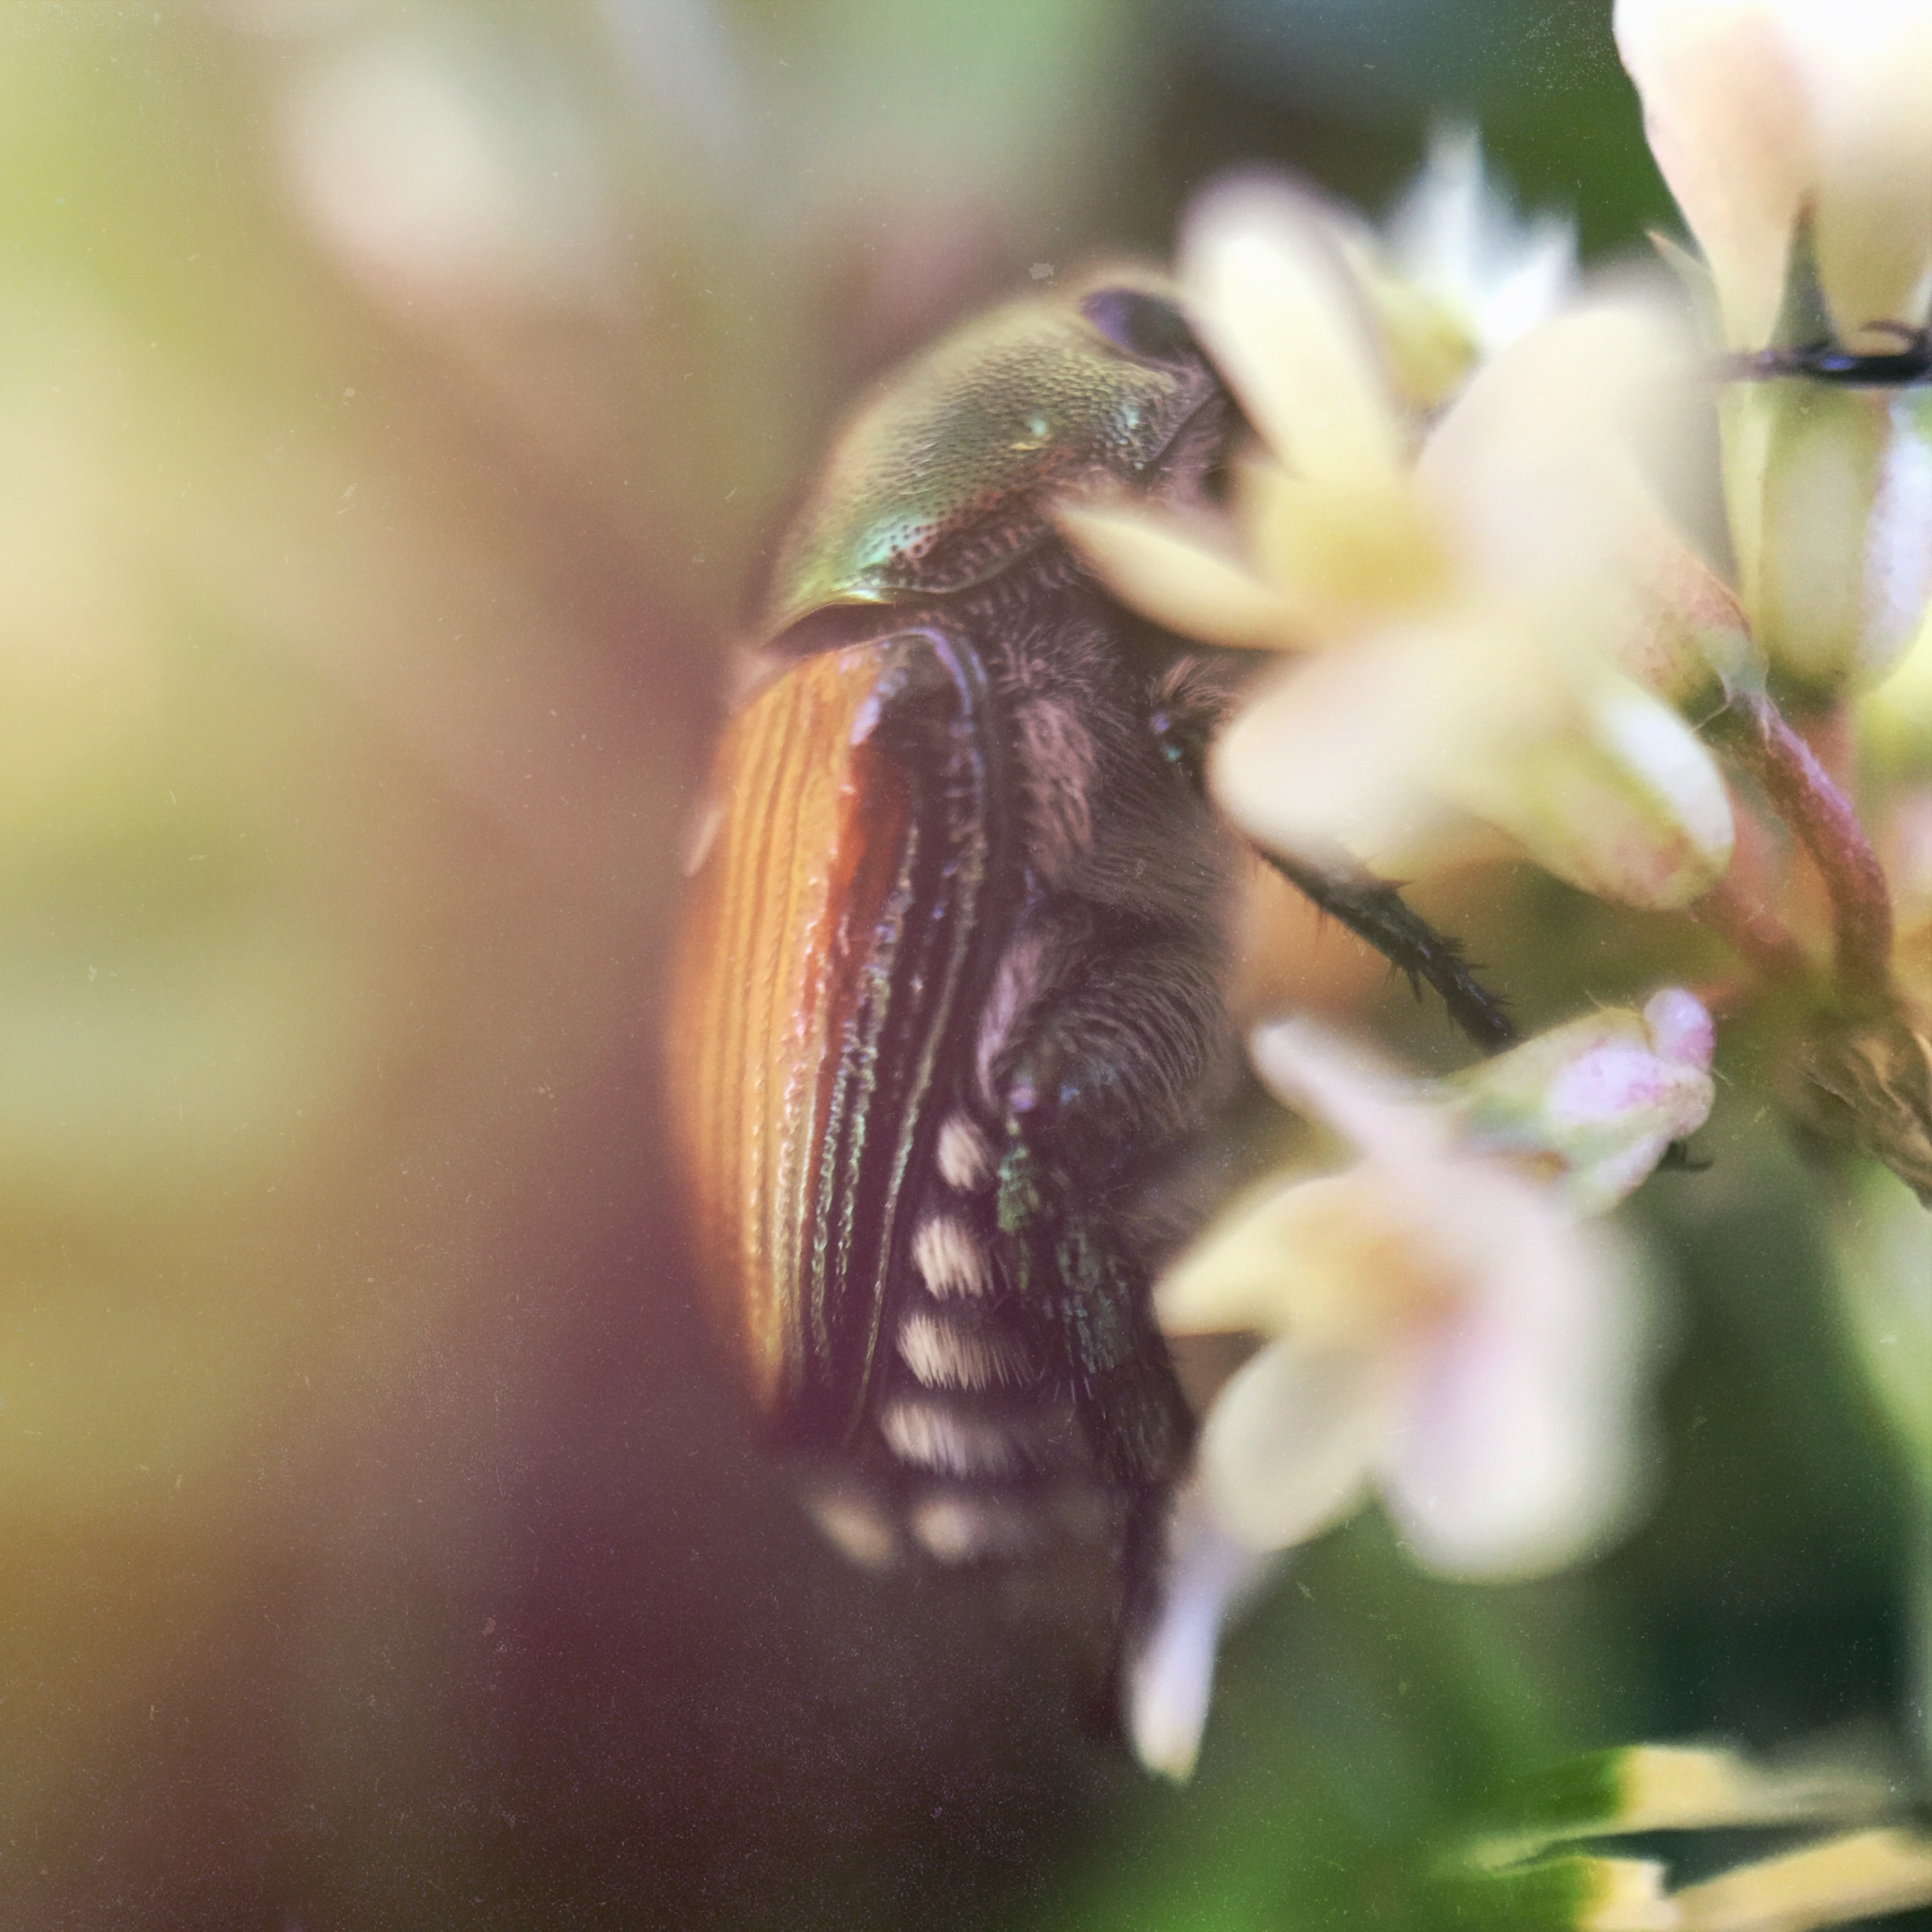 A macro shot of a shelled insect feeding on white flowers